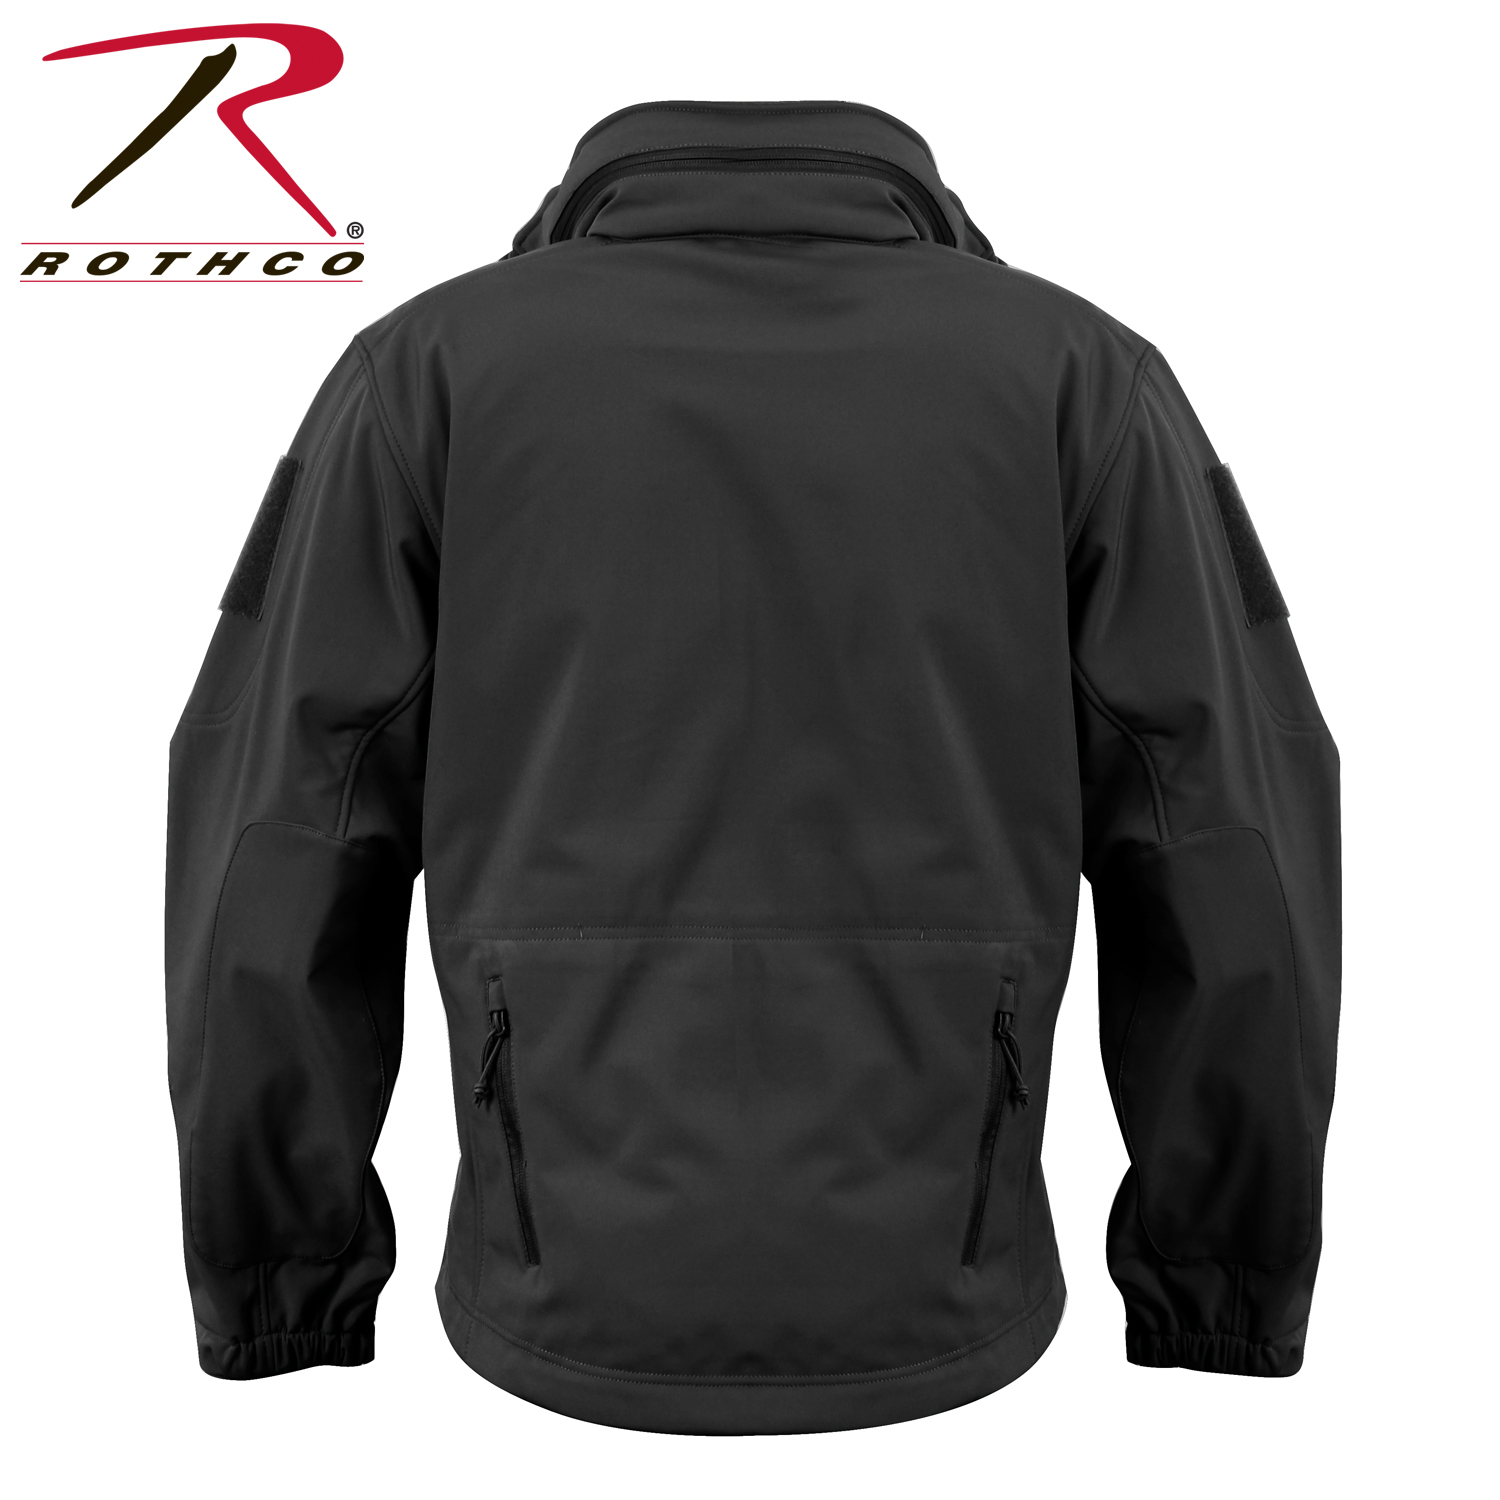 SPECIAL OPS TACTICAL SOFT SHELL FLEECE JACKET BLACK